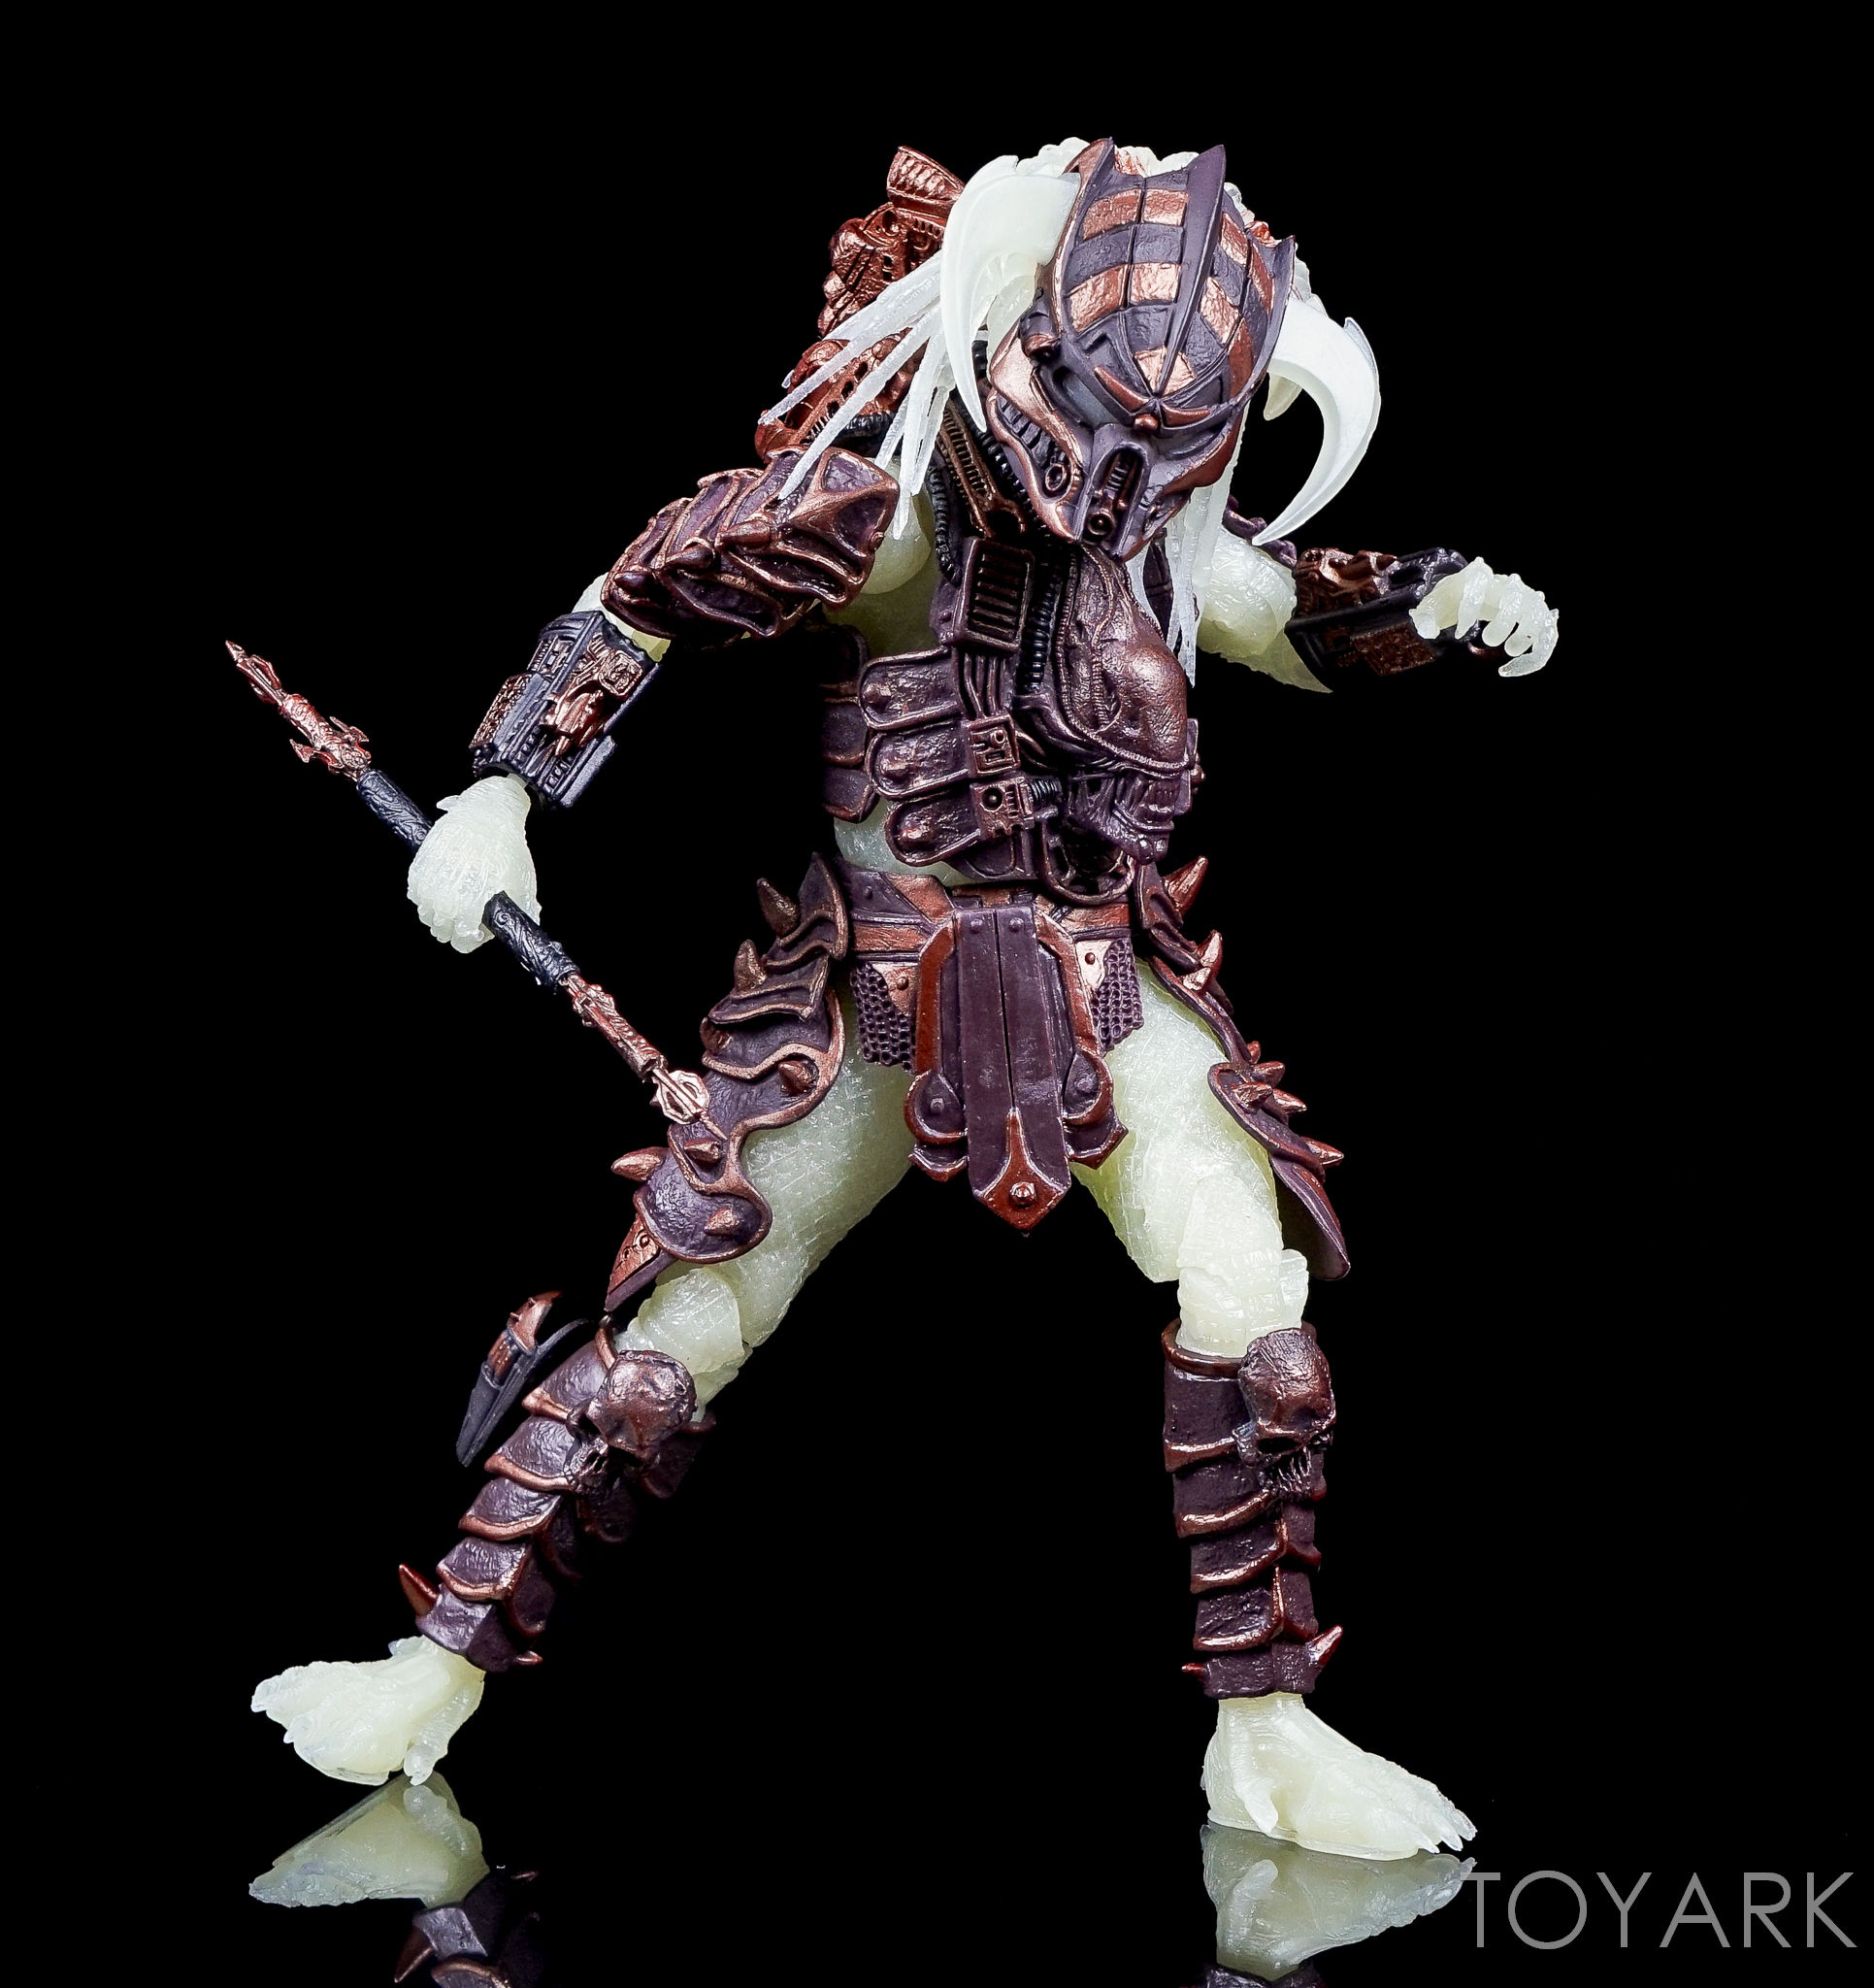 http://news.toyark.com/wp-content/uploads/sites/4/2016/10/Predator-Series-16-NECA-036.jpg